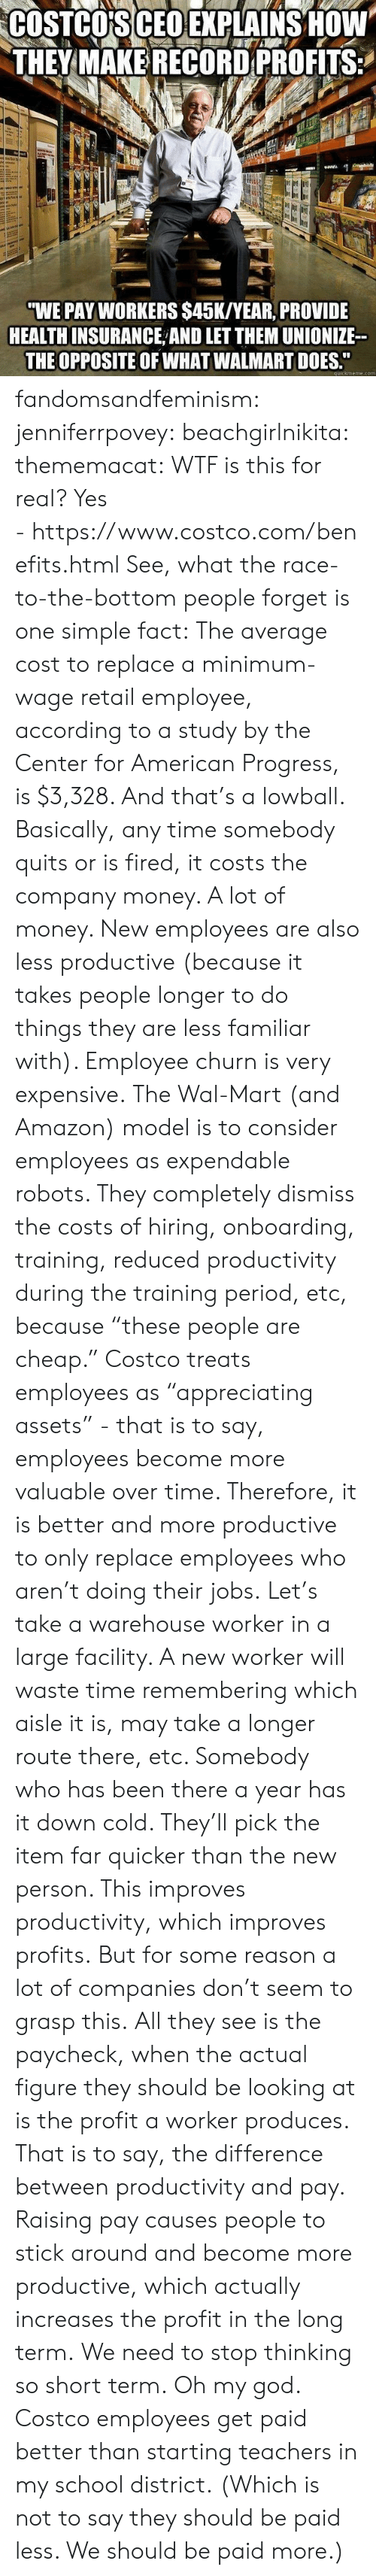 """Amazon, Costco, and God: COSTCO'S CEO EXPLAINS HOW  THEY MAKE RECORD PROFITS  """"WE PAY WORKERS $45K/YEAR, PROVIDE  HEALTH INSURANCE AND LET THEM UNIONIZE  THE OPPOSITE OF WHAT WALMART DOES.""""  quickmeme.com fandomsandfeminism:  jenniferrpovey:  beachgirlnikita:  thememacat: WTF is this for real? Yes -https://www.costco.com/benefits.html  See, what the race-to-the-bottom people forget is one simple fact: The average cost to replace a minimum-wage retail employee, according to a study by the Center for American Progress, is $3,328. And that's a lowball. Basically, any time somebody quits or is fired, it costs the company money. A lot of money. New employees are also less productive (because it takes people longer to do things they are less familiar with). Employee churn is very expensive. The Wal-Mart (and Amazon) model is to consider employees as expendable robots. They completely dismiss the costs of hiring, onboarding, training, reduced productivity during the training period, etc, because""""these people are cheap."""" Costco treats employees as""""appreciating assets"""" - that is to say, employees become more valuable over time. Therefore, it is better and more productive to only replace employees who aren't doing their jobs. Let's take a warehouse worker in a large facility. A new worker will waste time remembering which aisle it is, may take a longer route there, etc. Somebody who has been there a year has it down cold. They'll pick the item farquicker than the new person. This improves productivity, which improves profits. But for some reason a lot of companies don't seem to grasp this. All they see is the paycheck, when the actual figure they should be looking at is the profita worker produces. That is to say, the difference between productivity and pay. Raising pay causes people to stick around and become more productive, which actually increases the profit in the long term. We need to stop thinking so short term.   Oh my god. Costco employees get paid better than starti"""